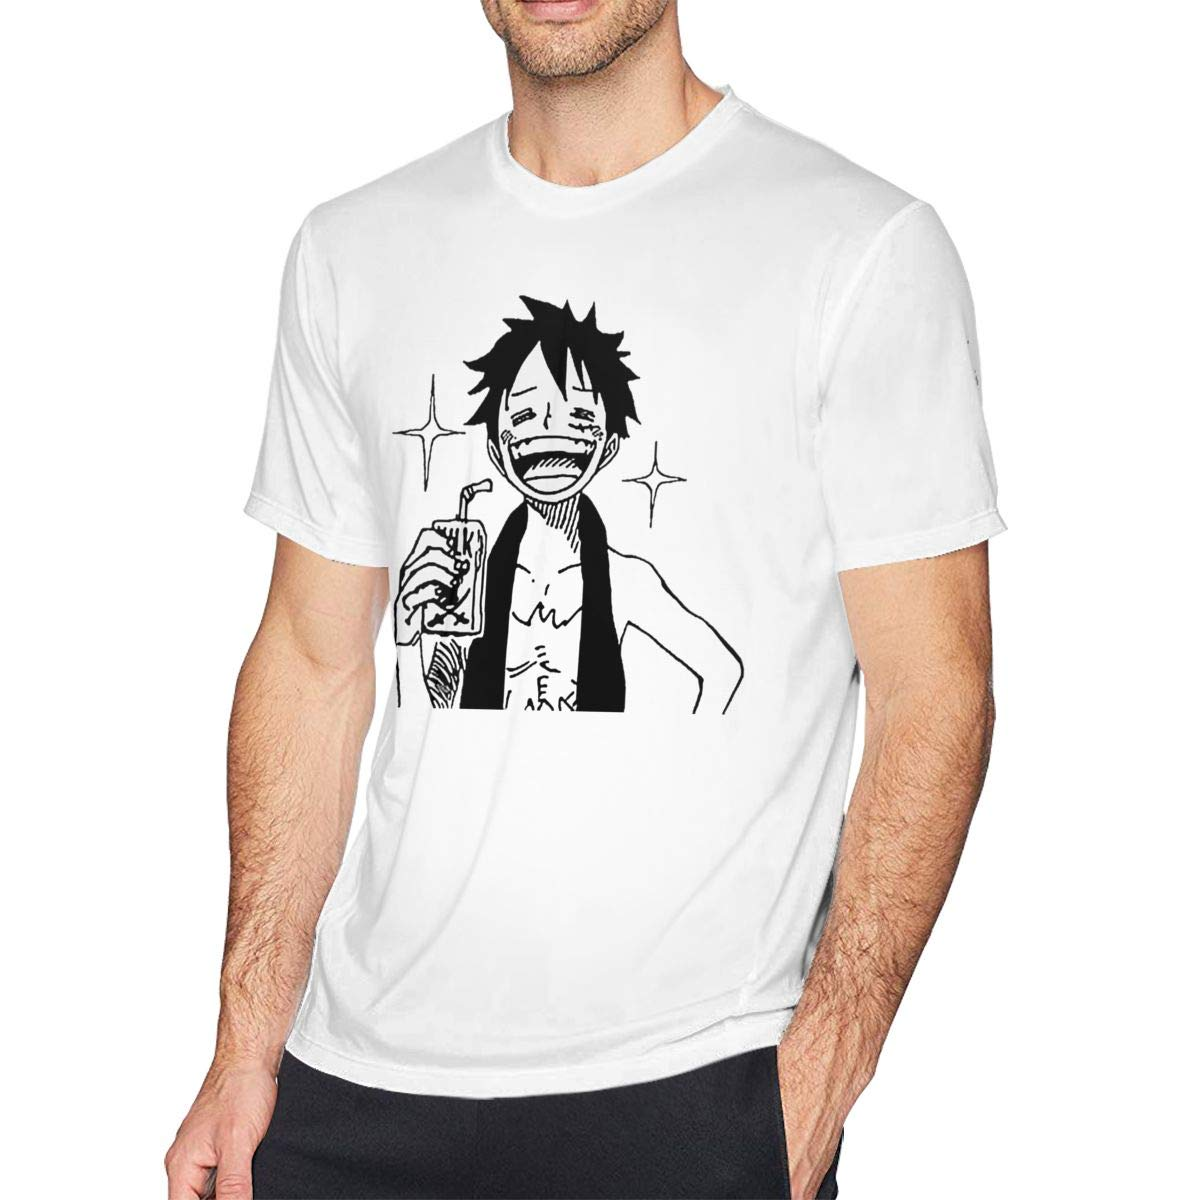 Bfcxbgdsig ONE Piece Luffy Soft and Comfortable Fashionable Tee with Round Collar White